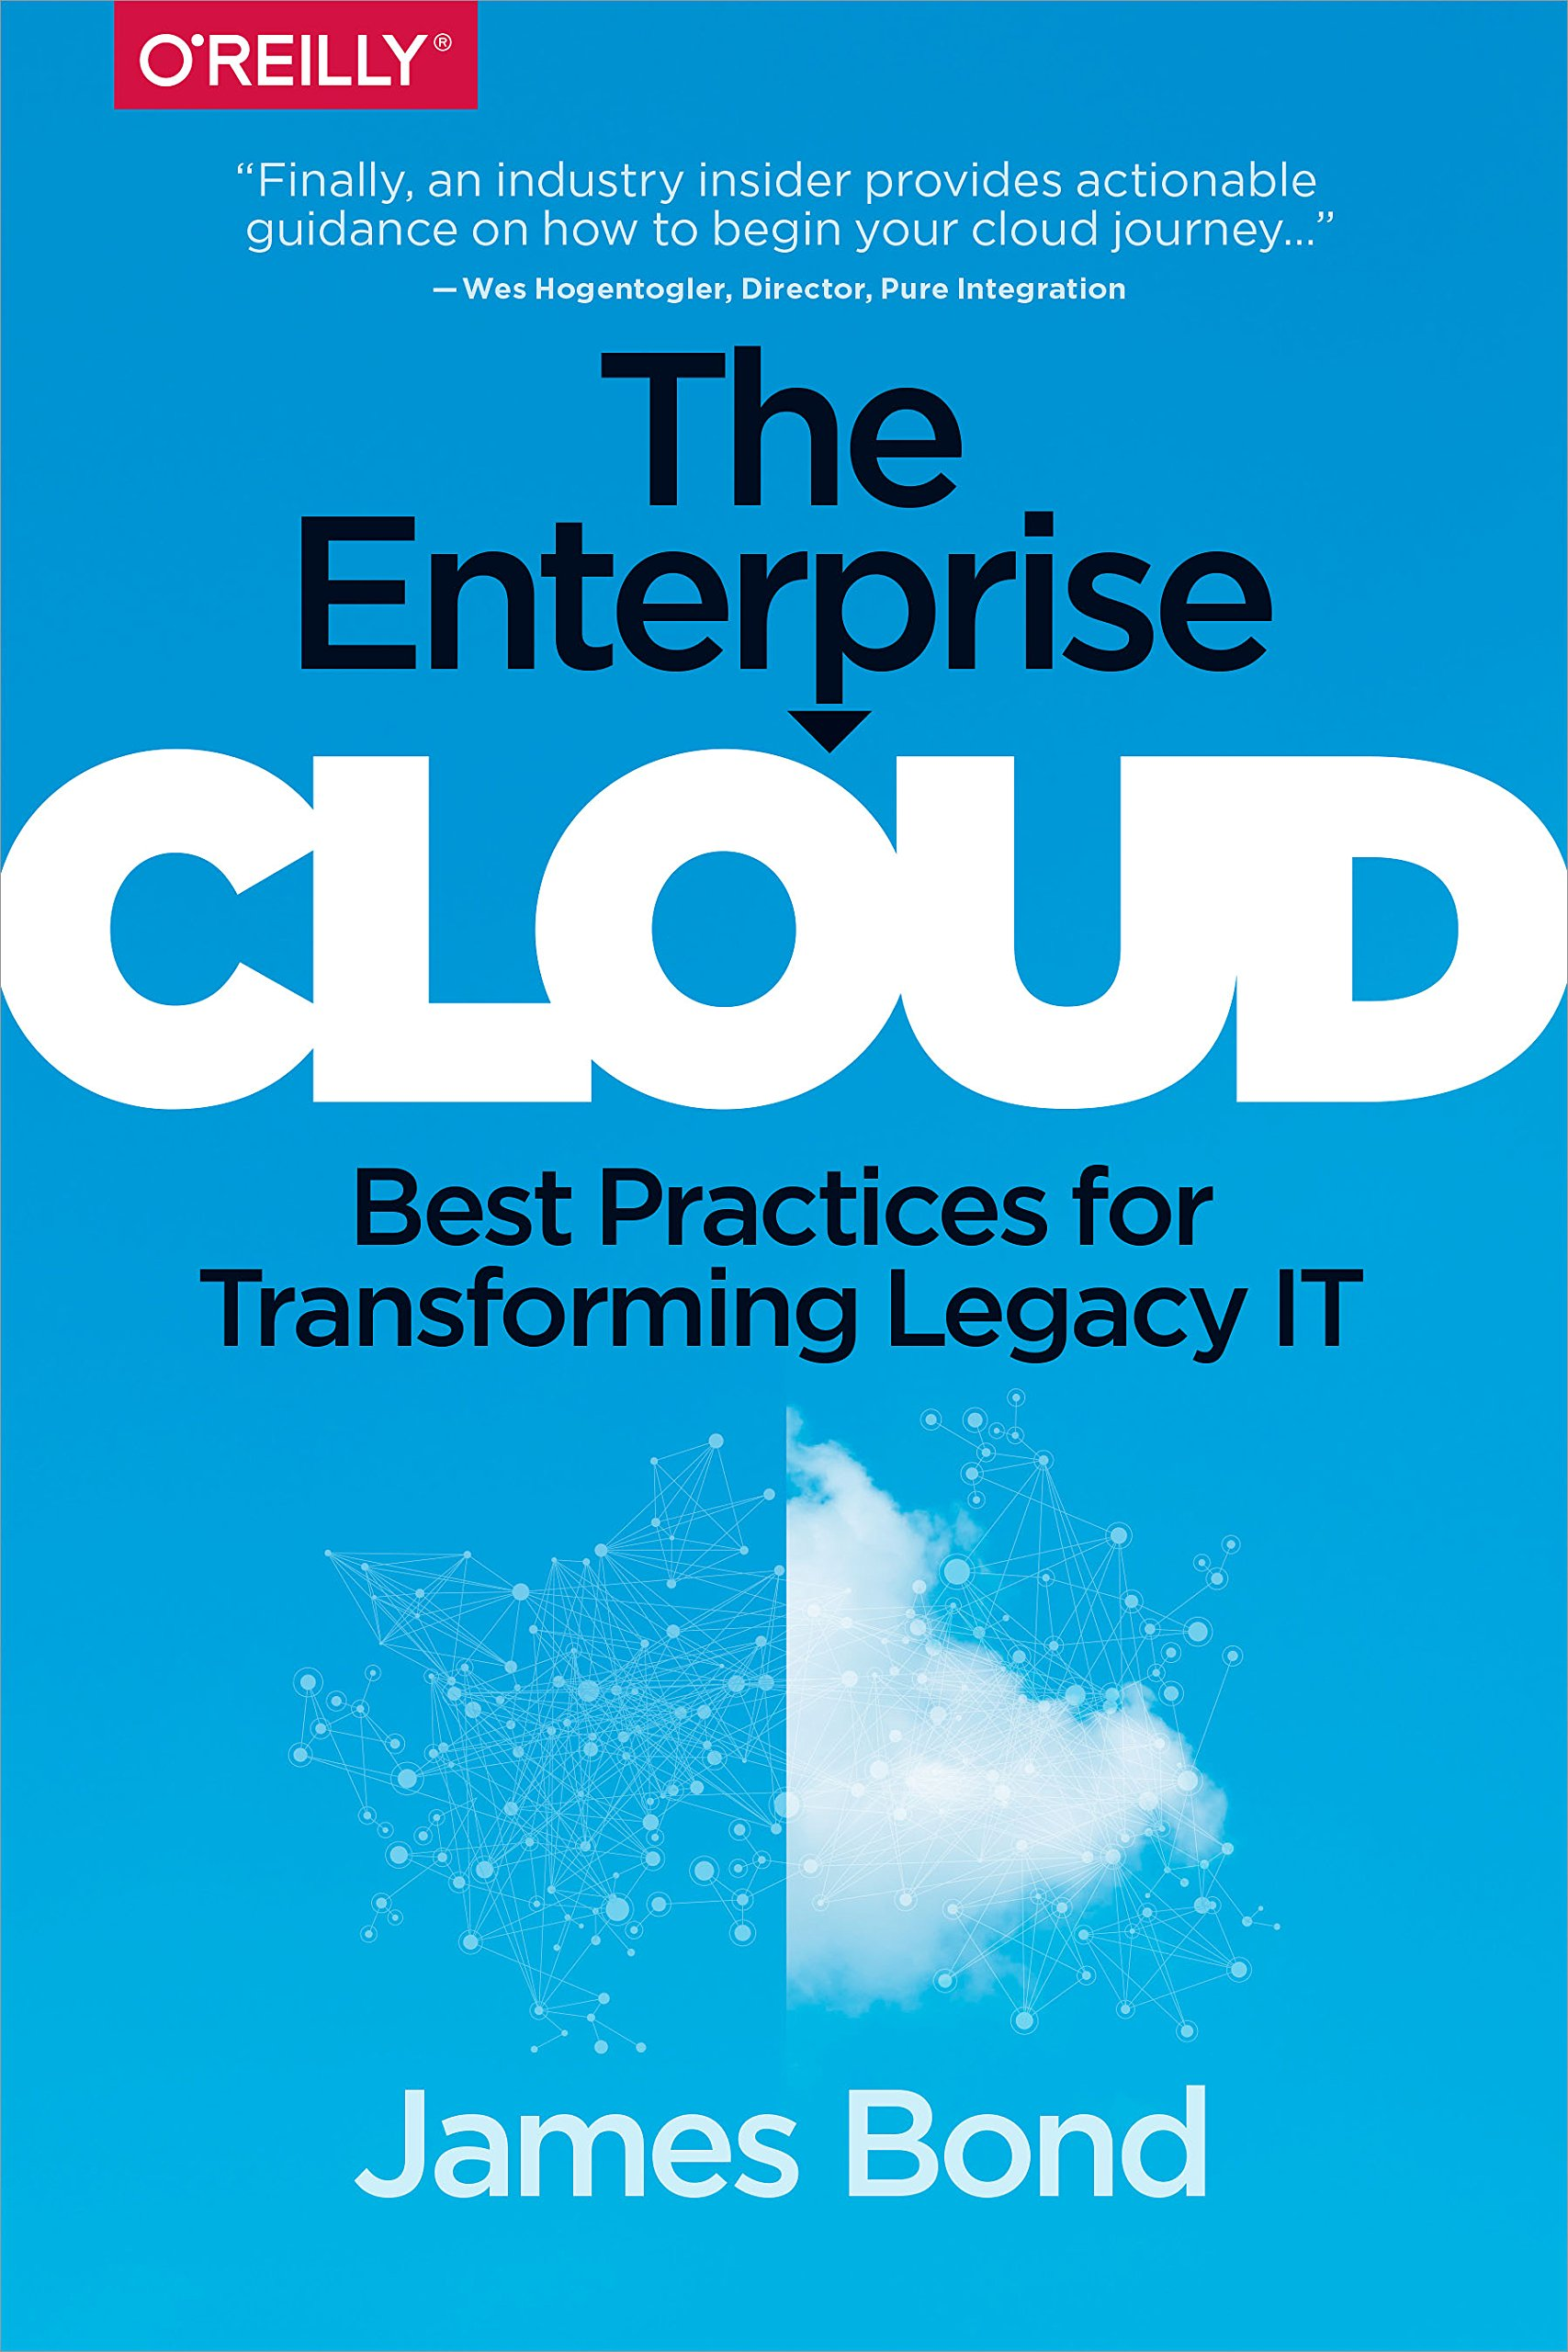 Image OfThe Enterprise Cloud